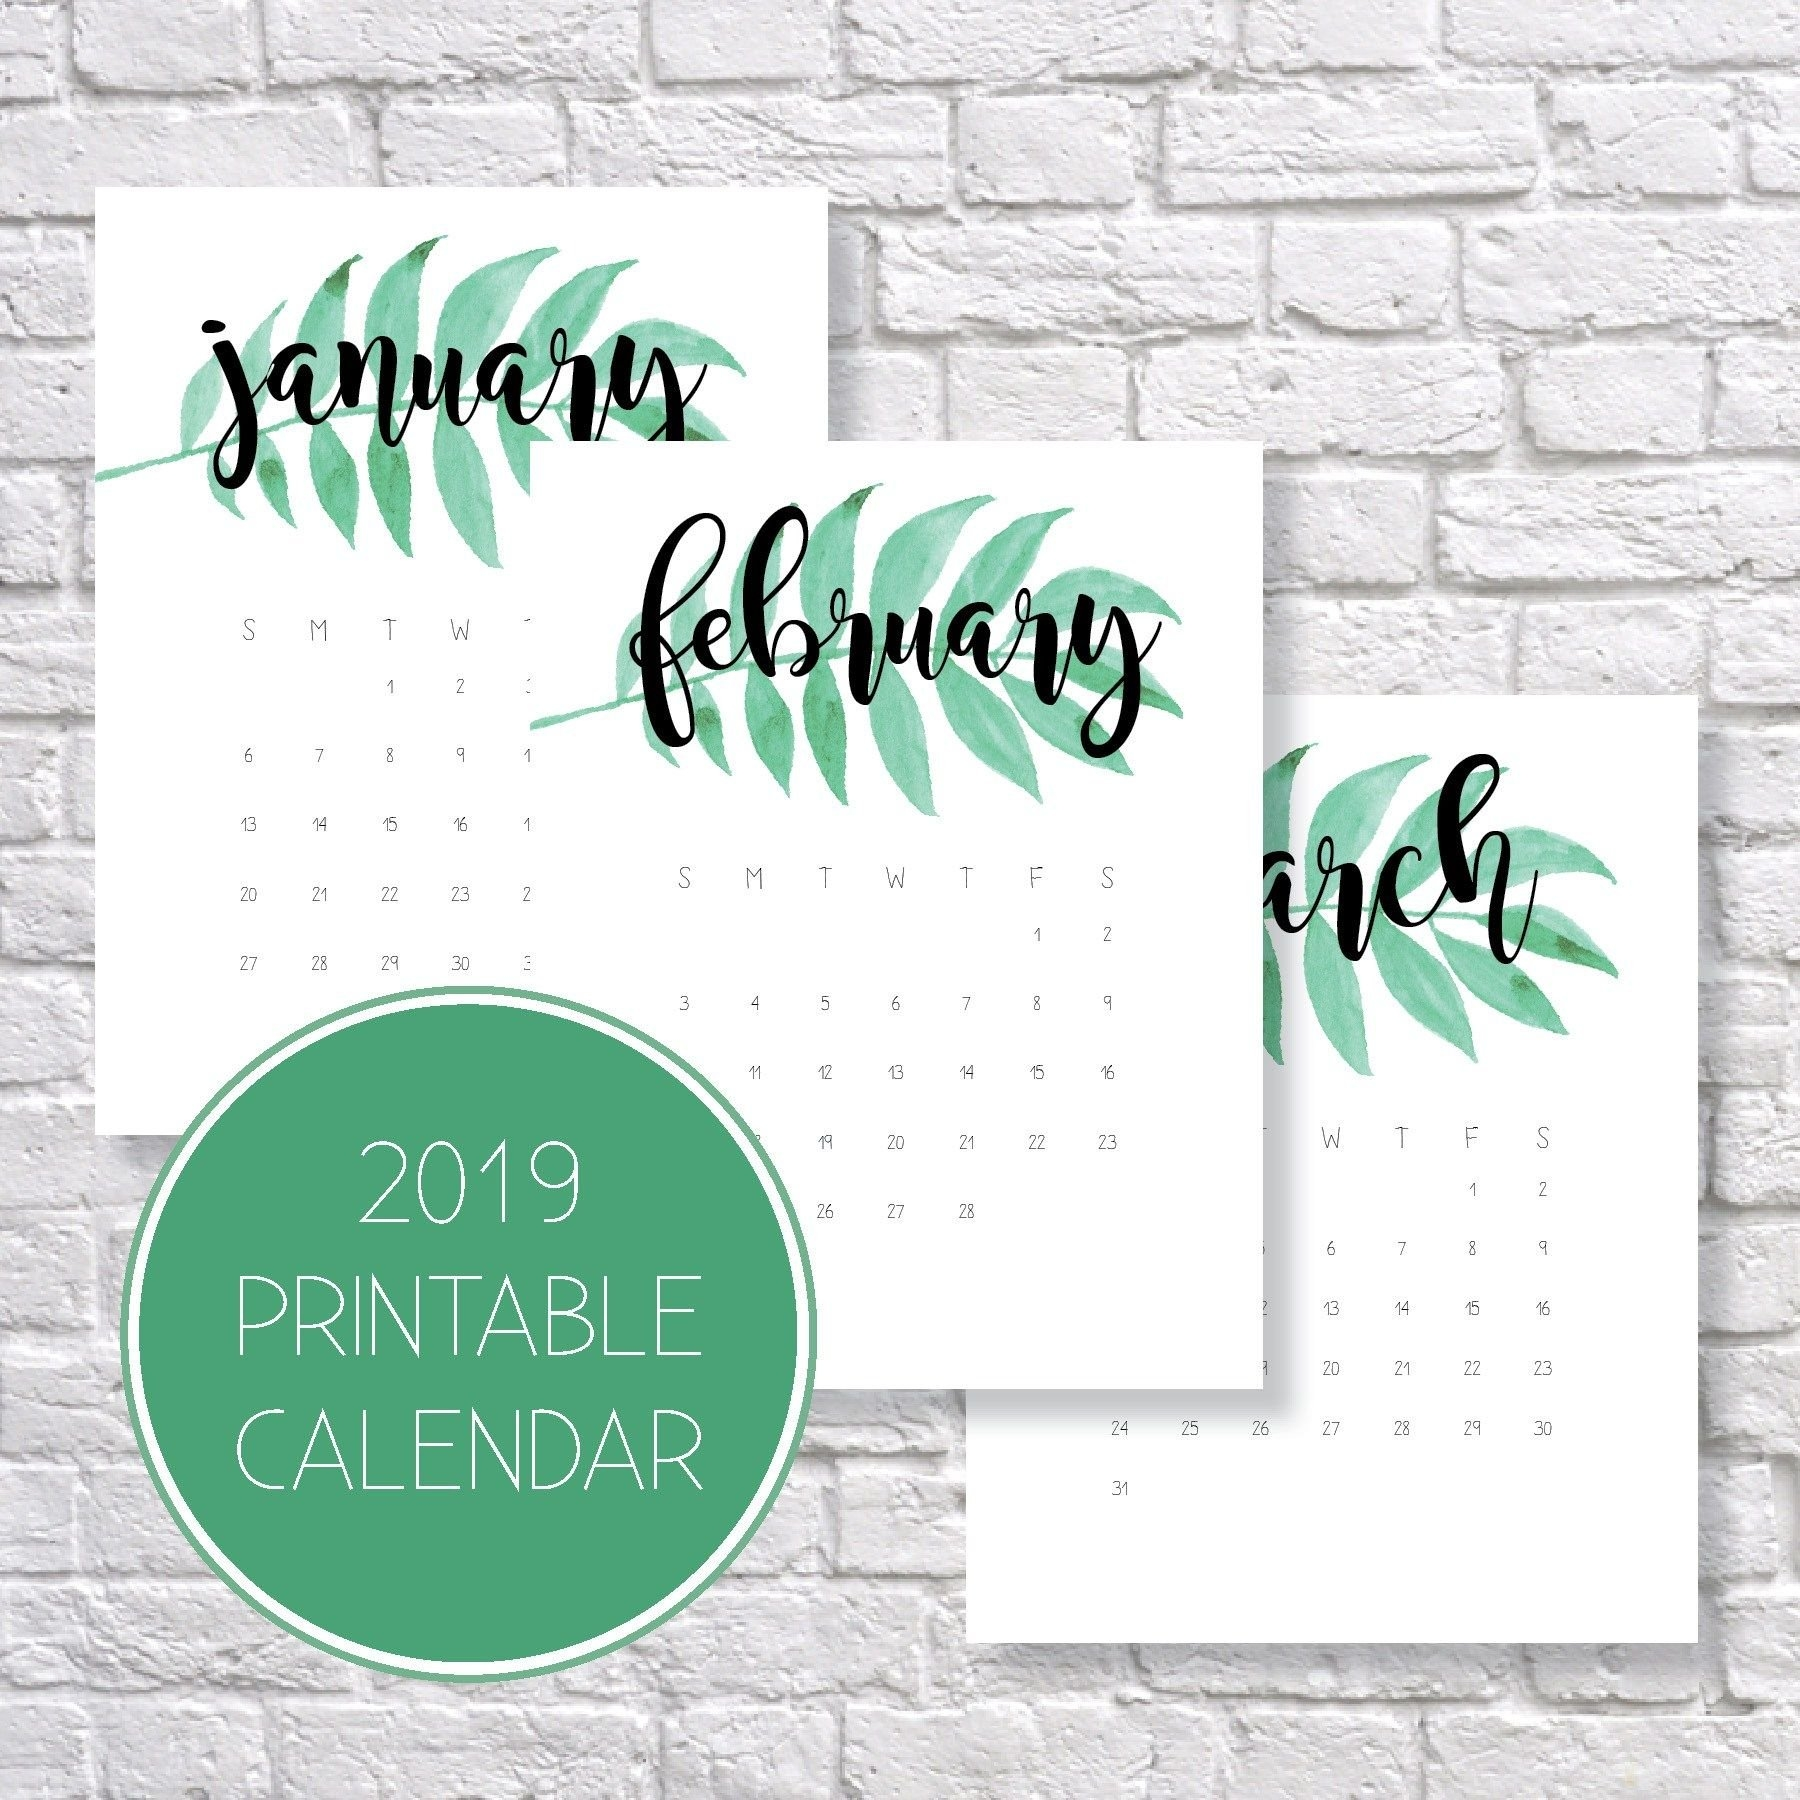 2019 Printable Calendars And Planners | Printables | Pinterest Calendar 2019 Ideas